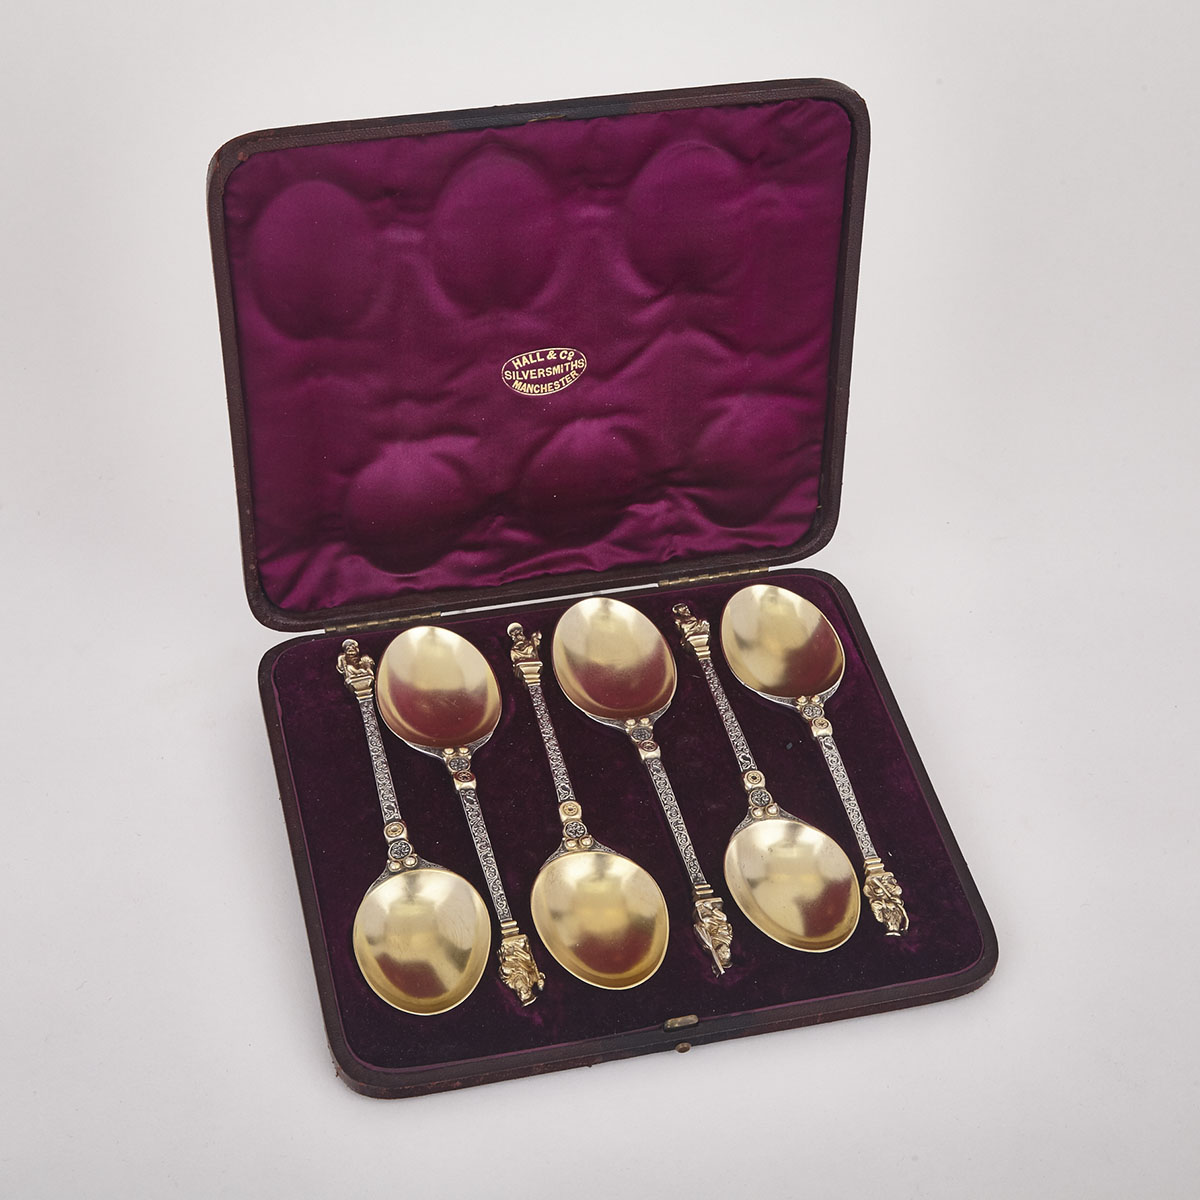 Set of Six Victorian Silver Parcel-Gilt Apostle Berry Spoons, Walter & John Barnard, London, 1877